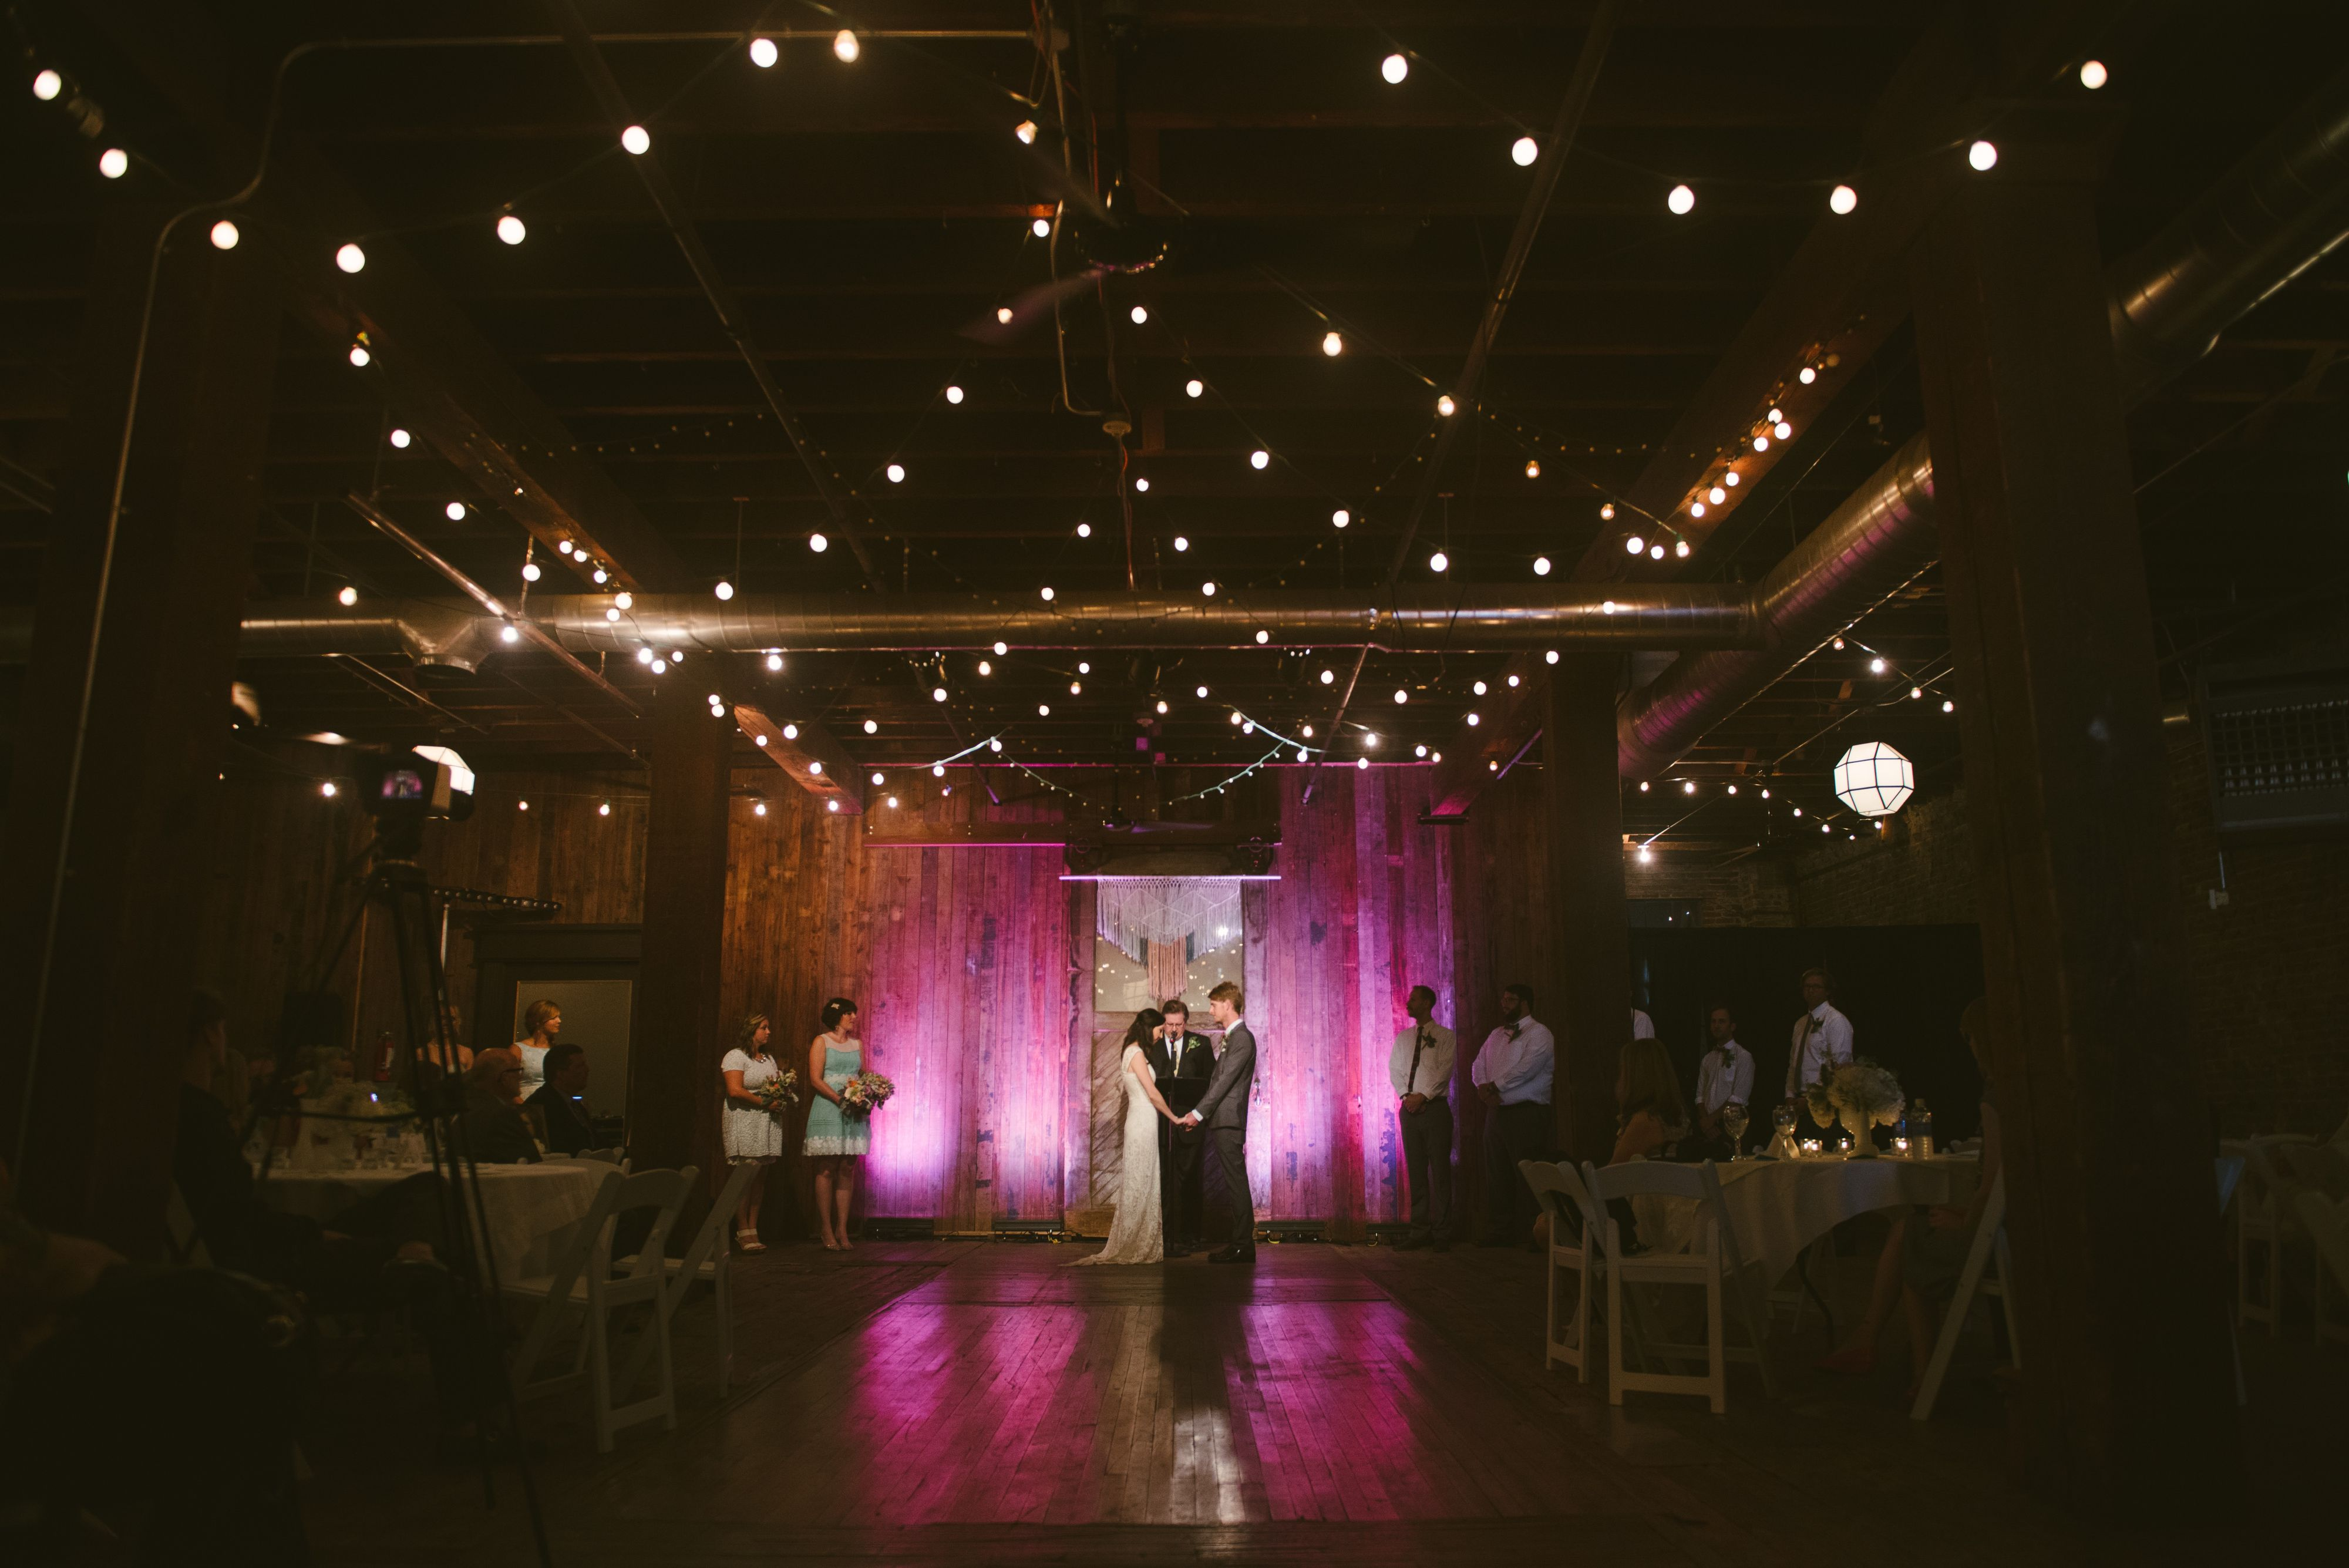 An image of a small wedding with bistro lights